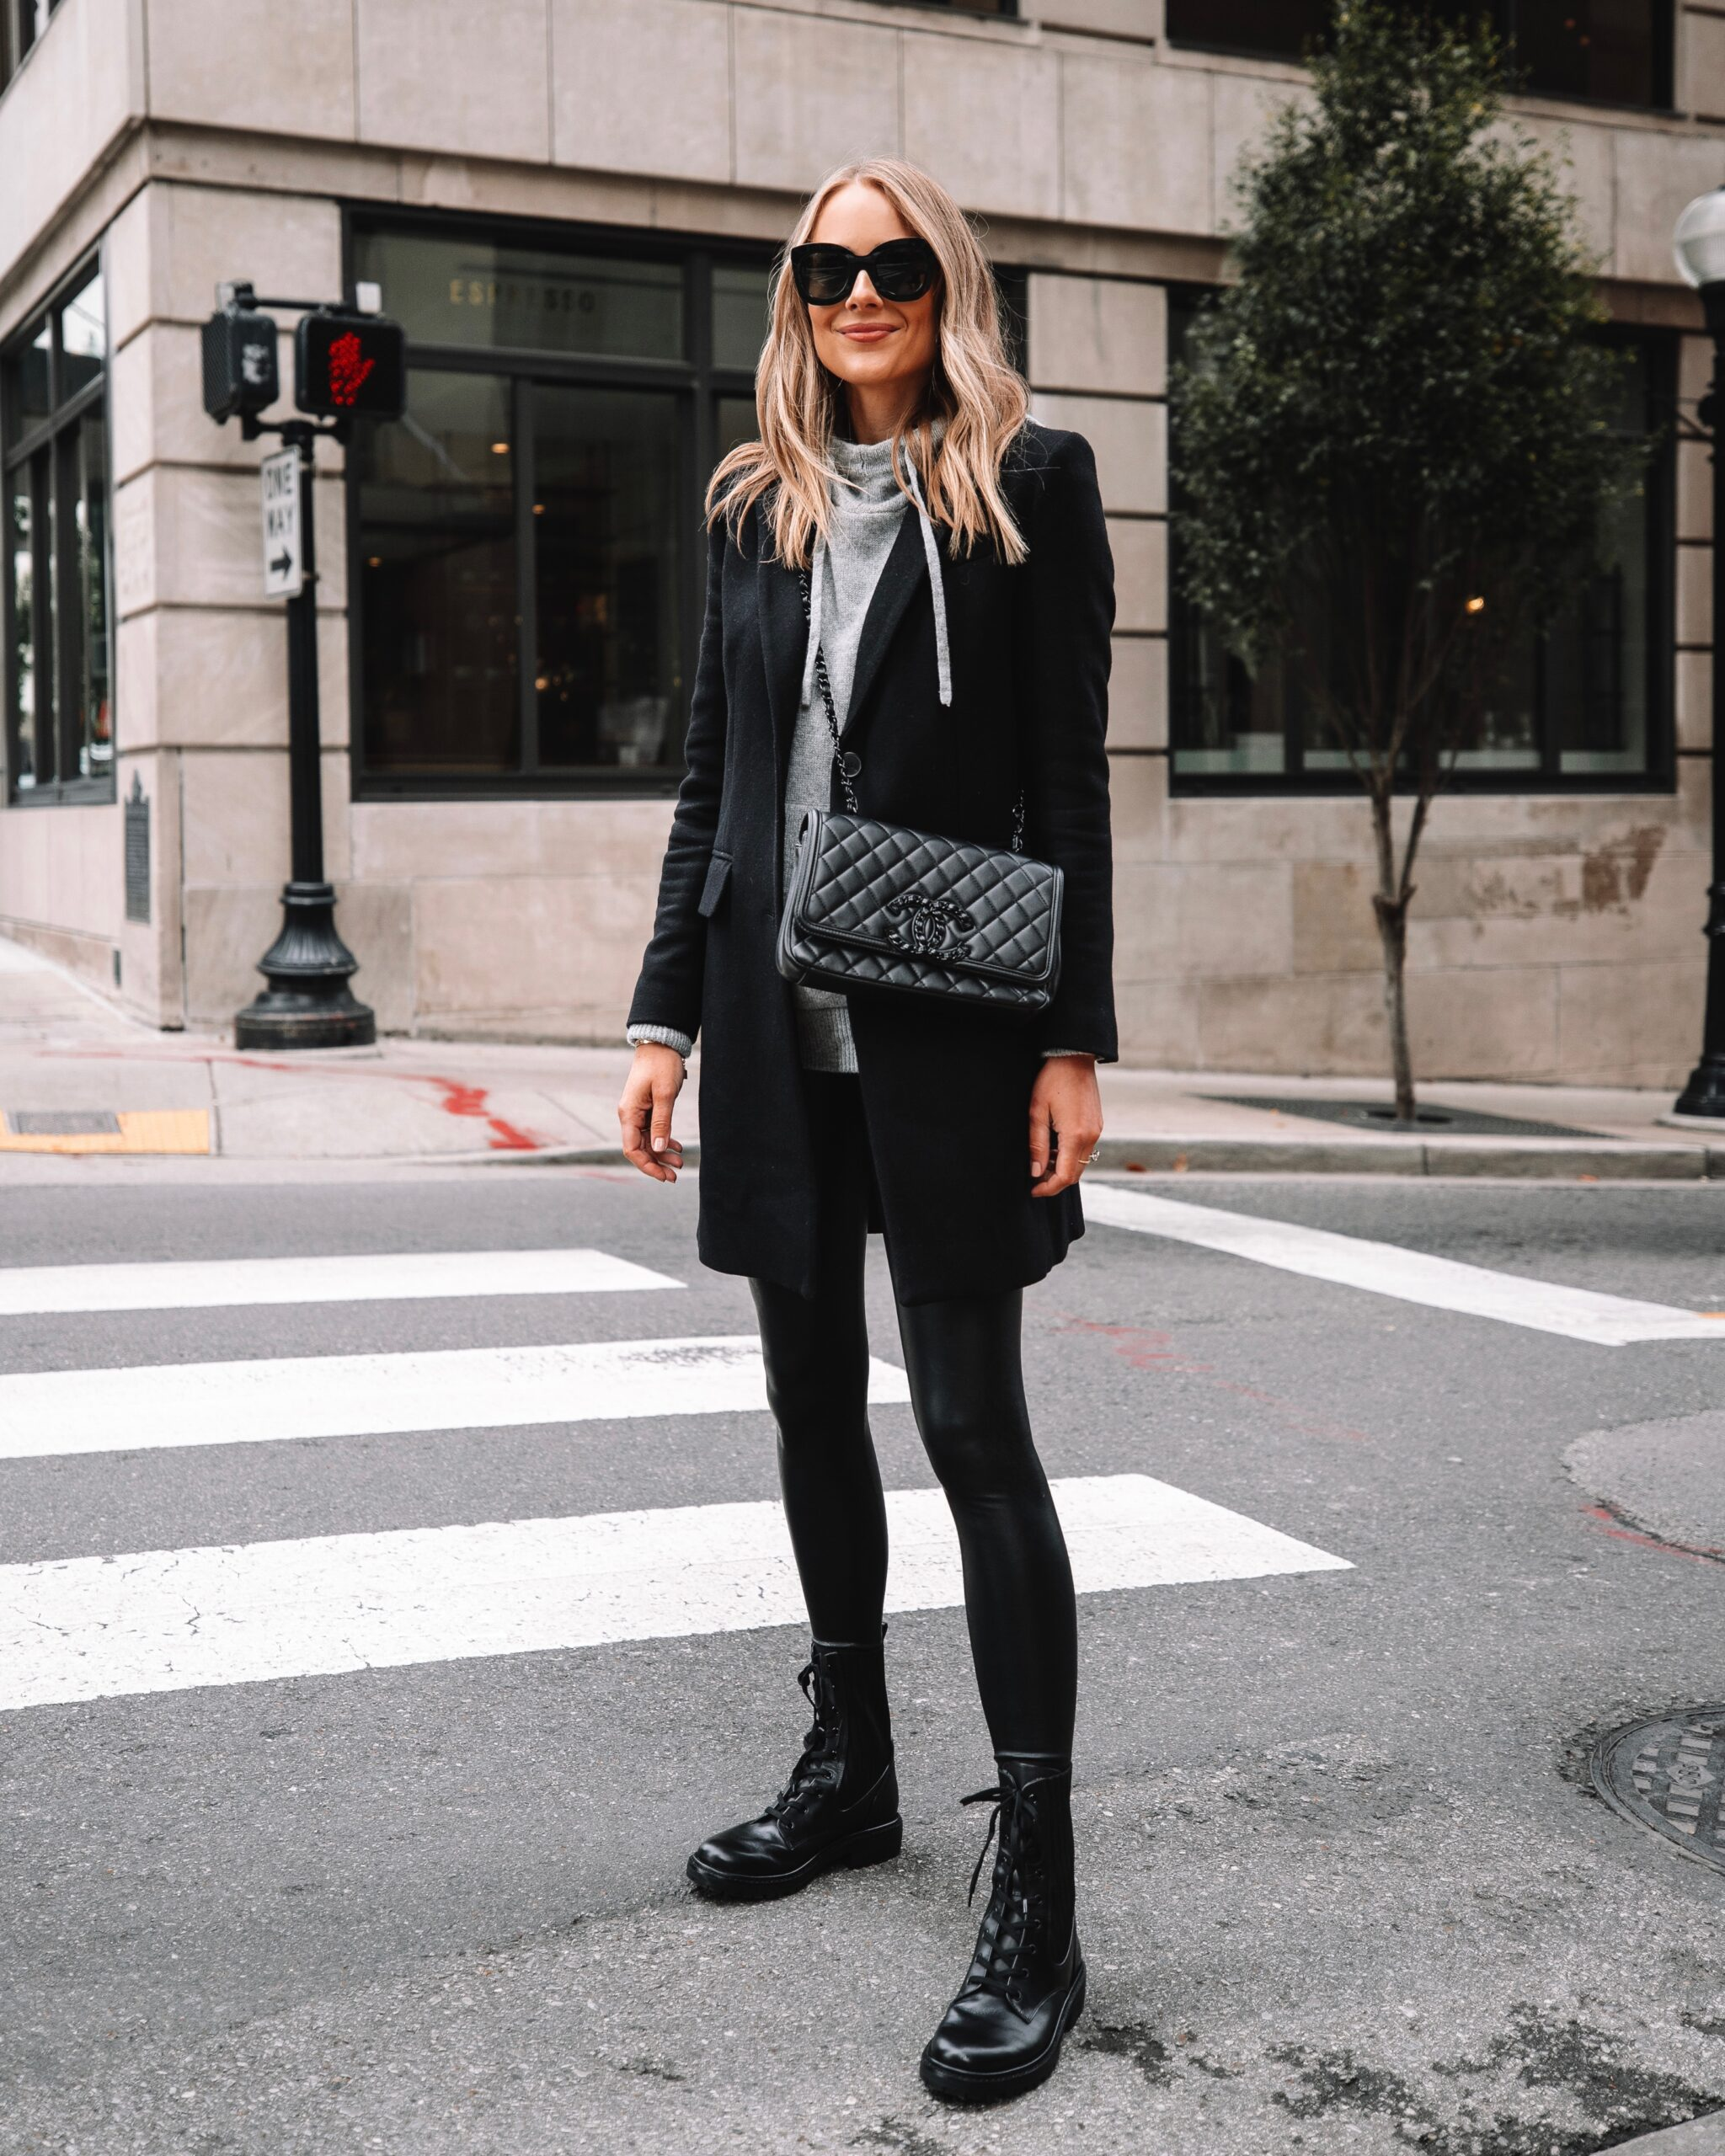 Fashion Jackson Wearing Commando Faux Leather Leggings Black Wool Coat Combat Boots Street Style Outfit